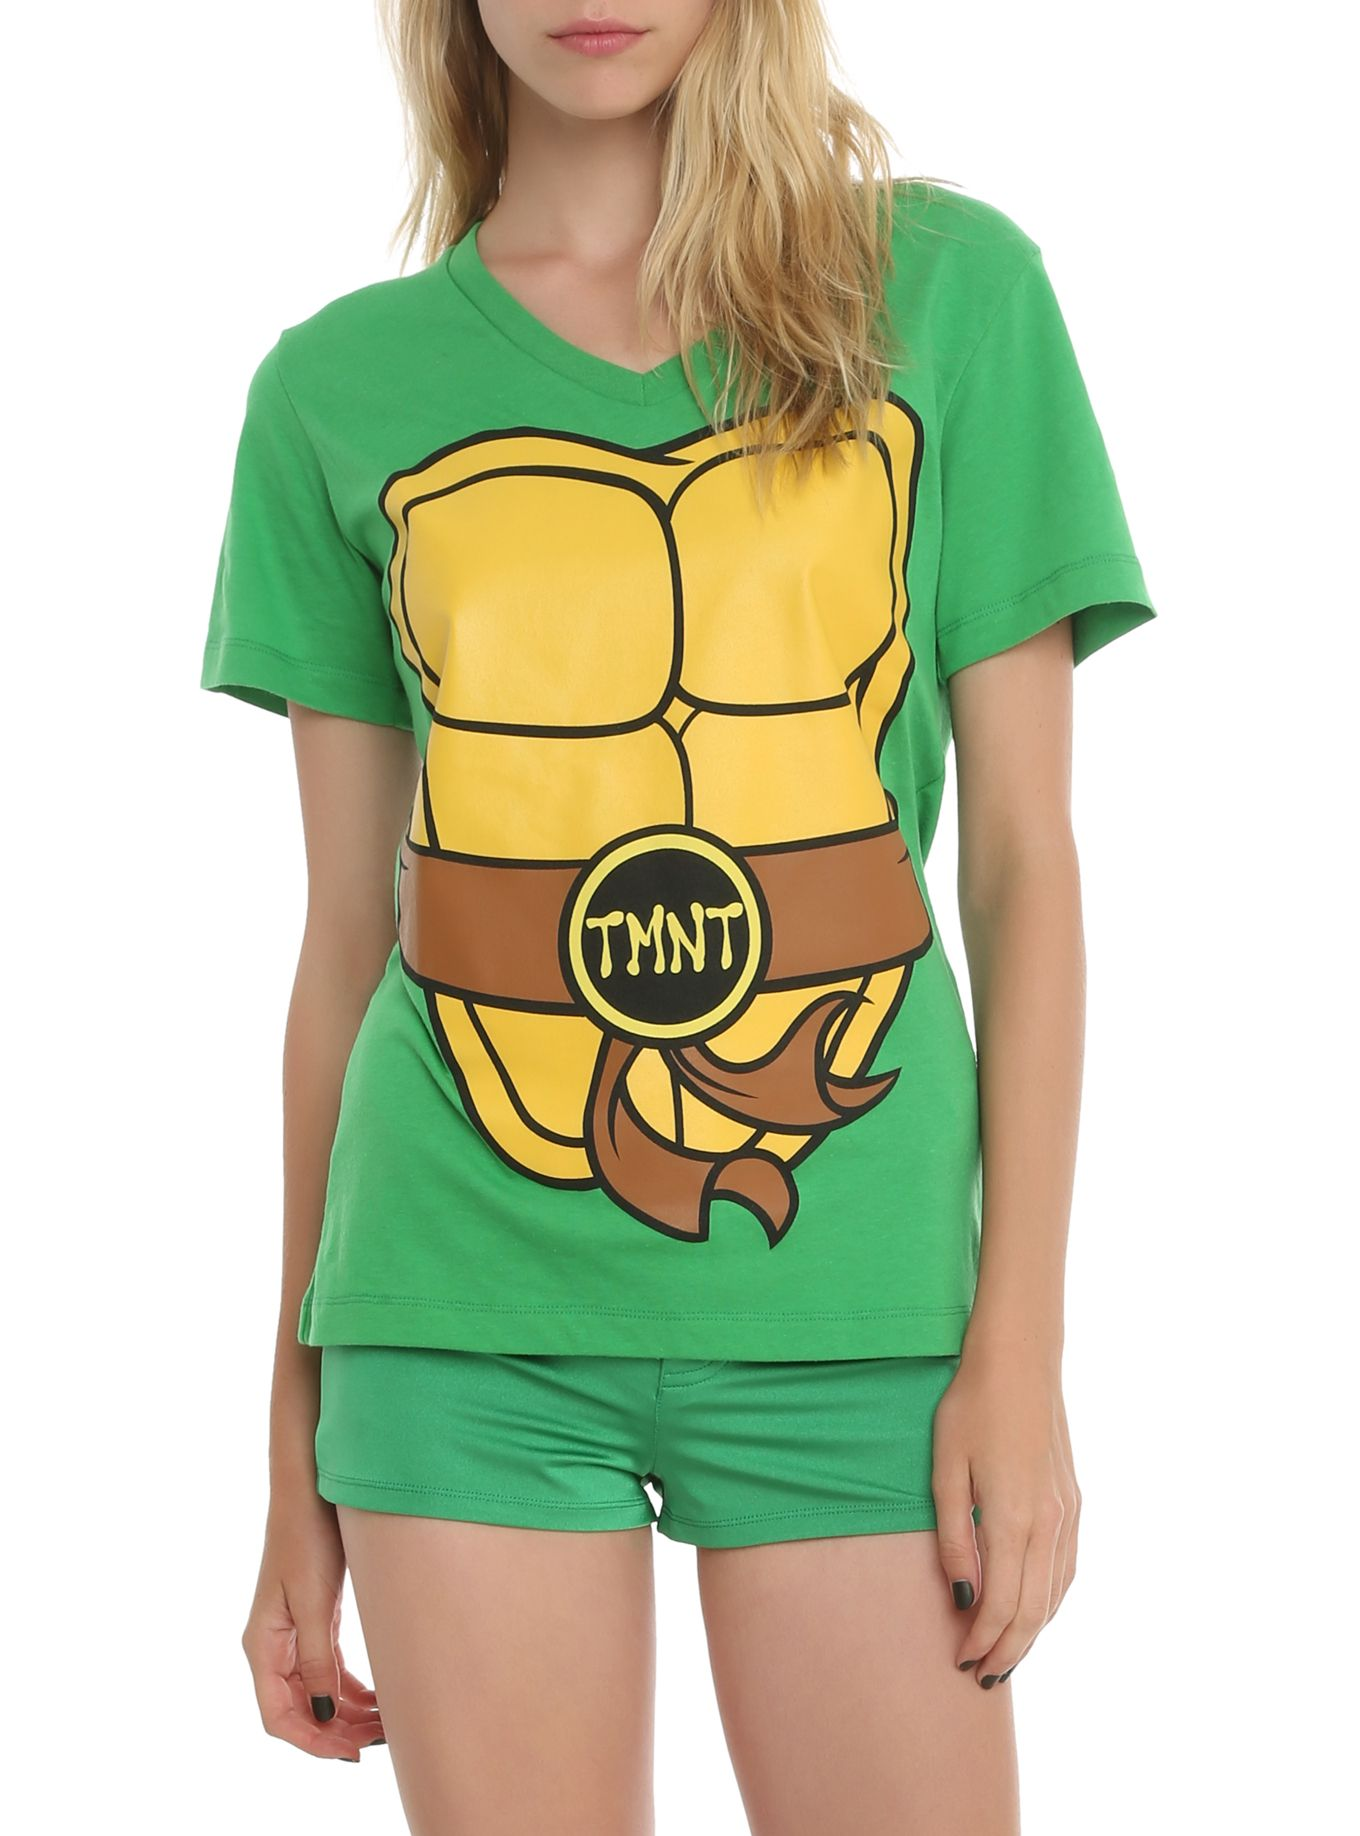 21c69e07 Teenage Mutant Ninja Turtles Costume Girls T-Shirt | Halloween ...